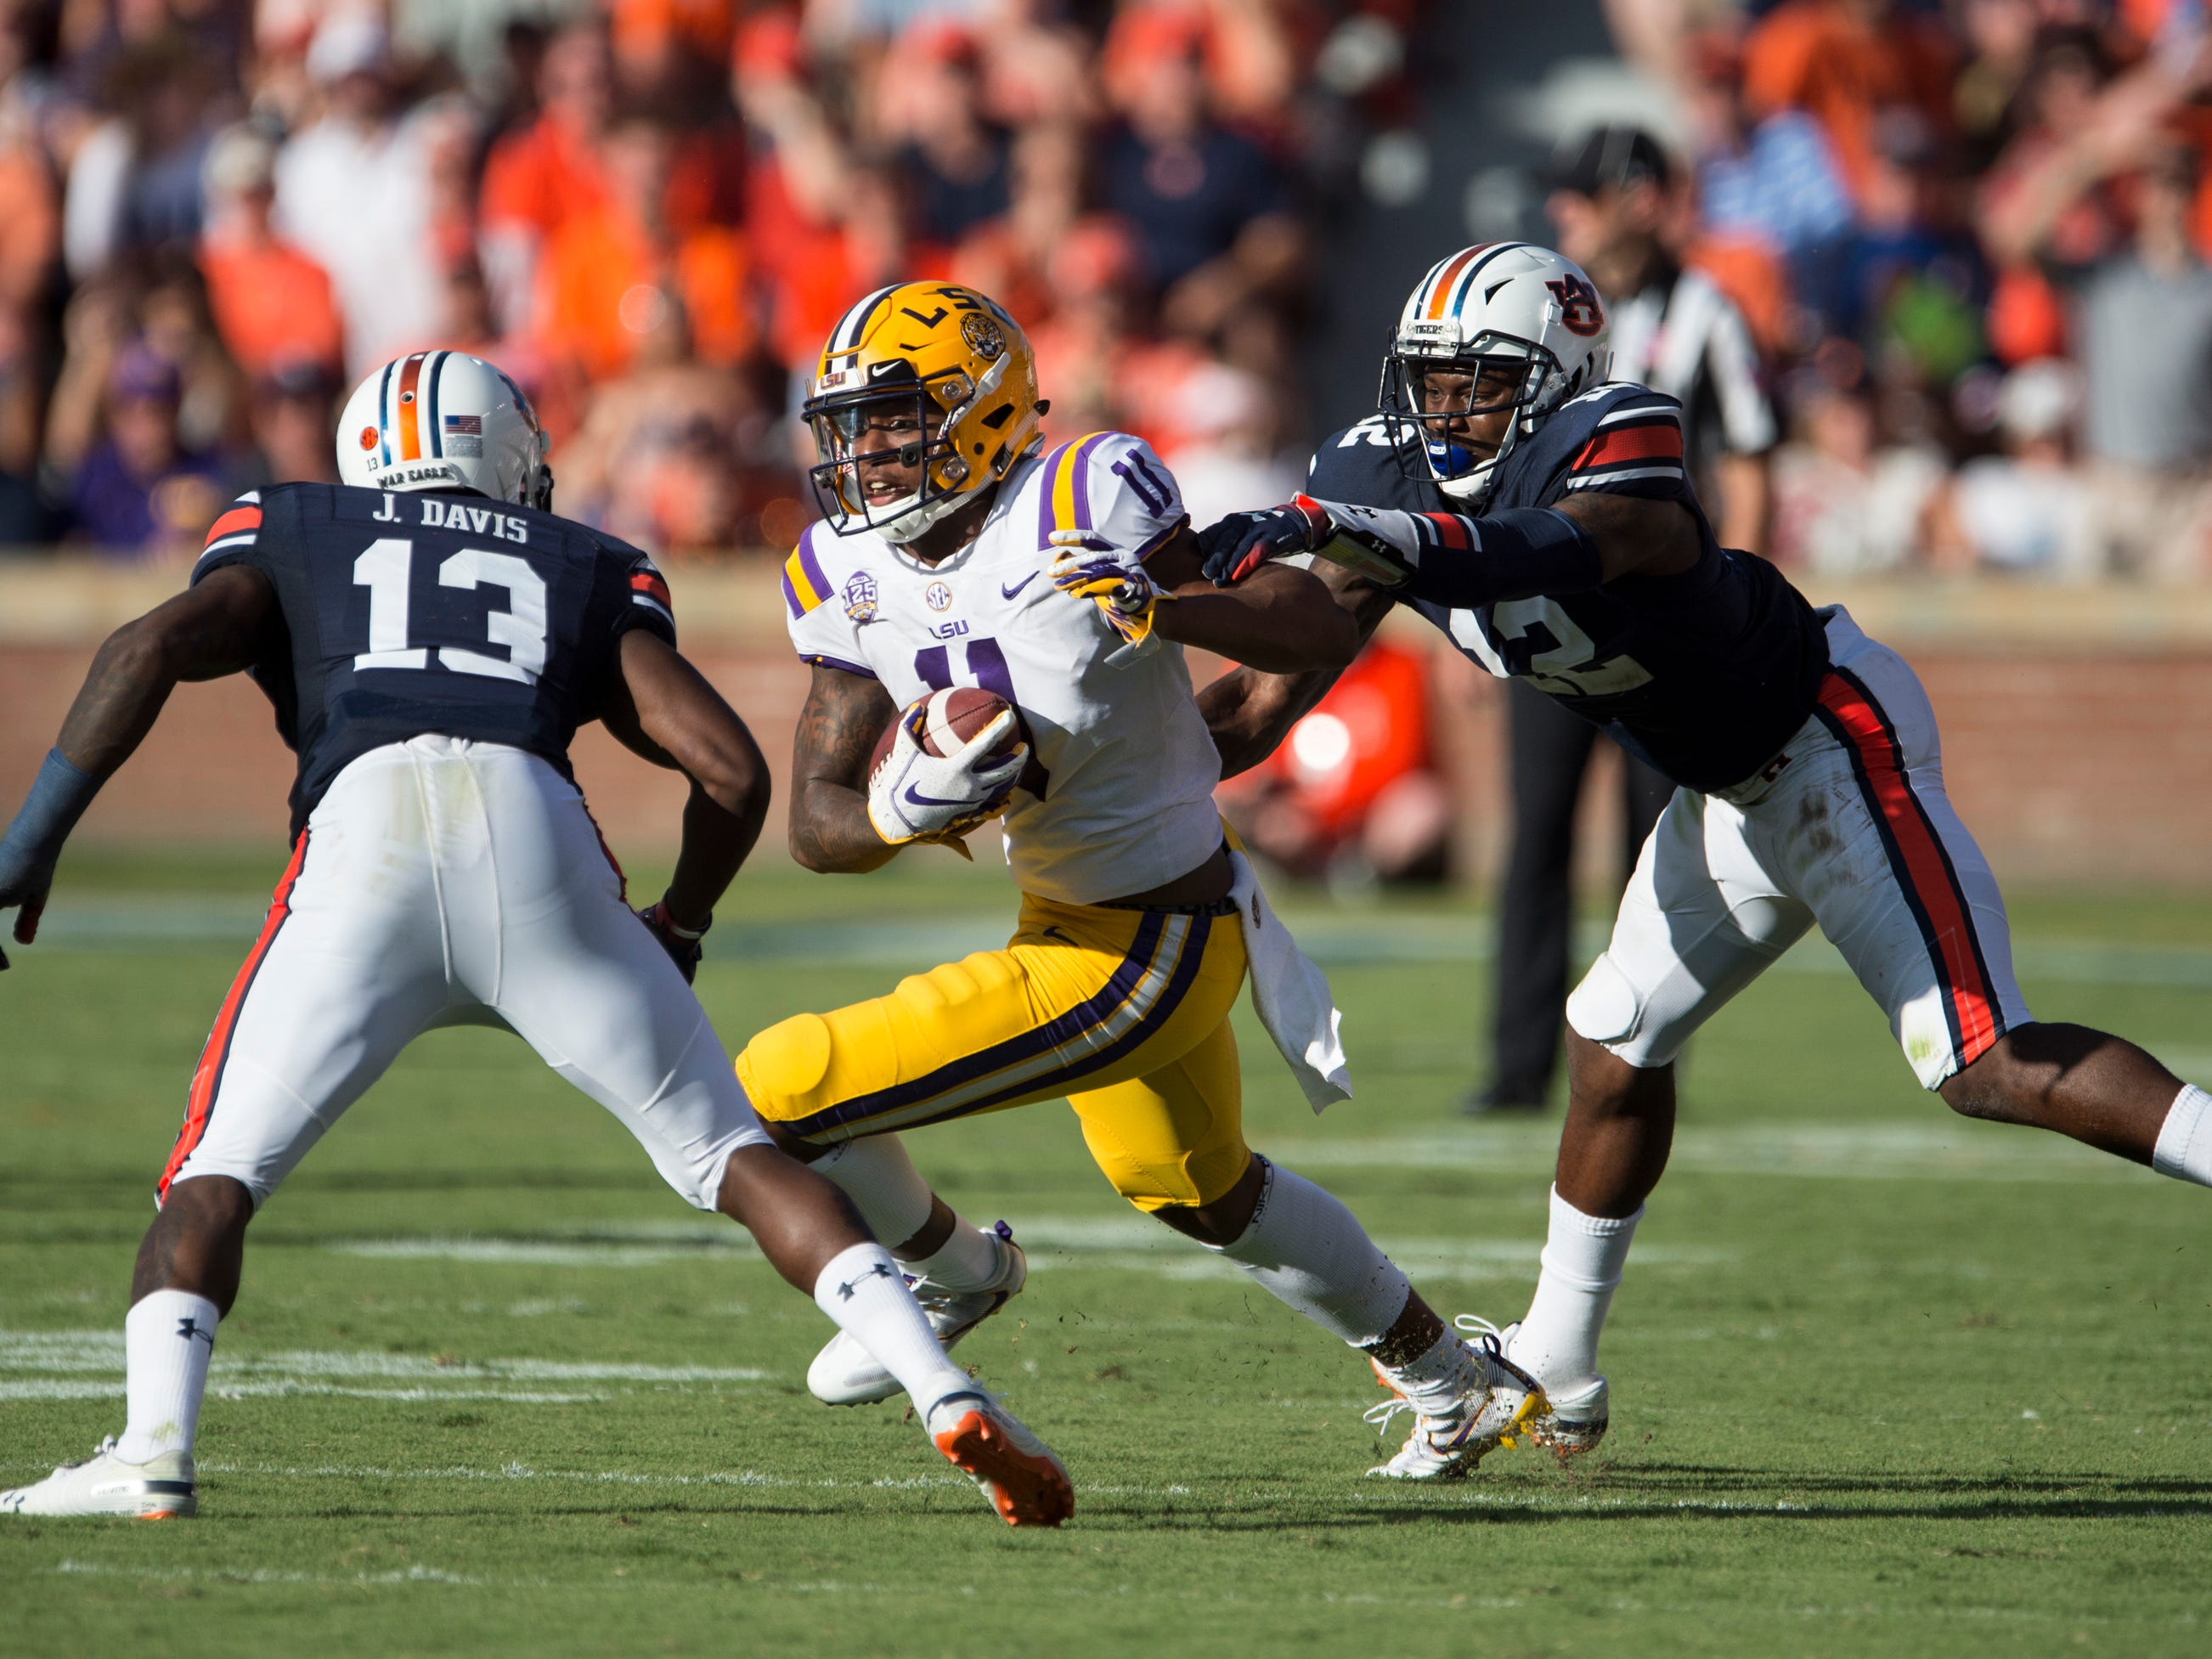 LSU's Dee Anderson (11) is tackled by Auburn's Javaris Davis (13) and Jamel Dean (12) at Jordan-Hare Stadium in Auburn, Ala., on Saturday, Sept. 15, 2018. LSU defeated Auburn 22-21.